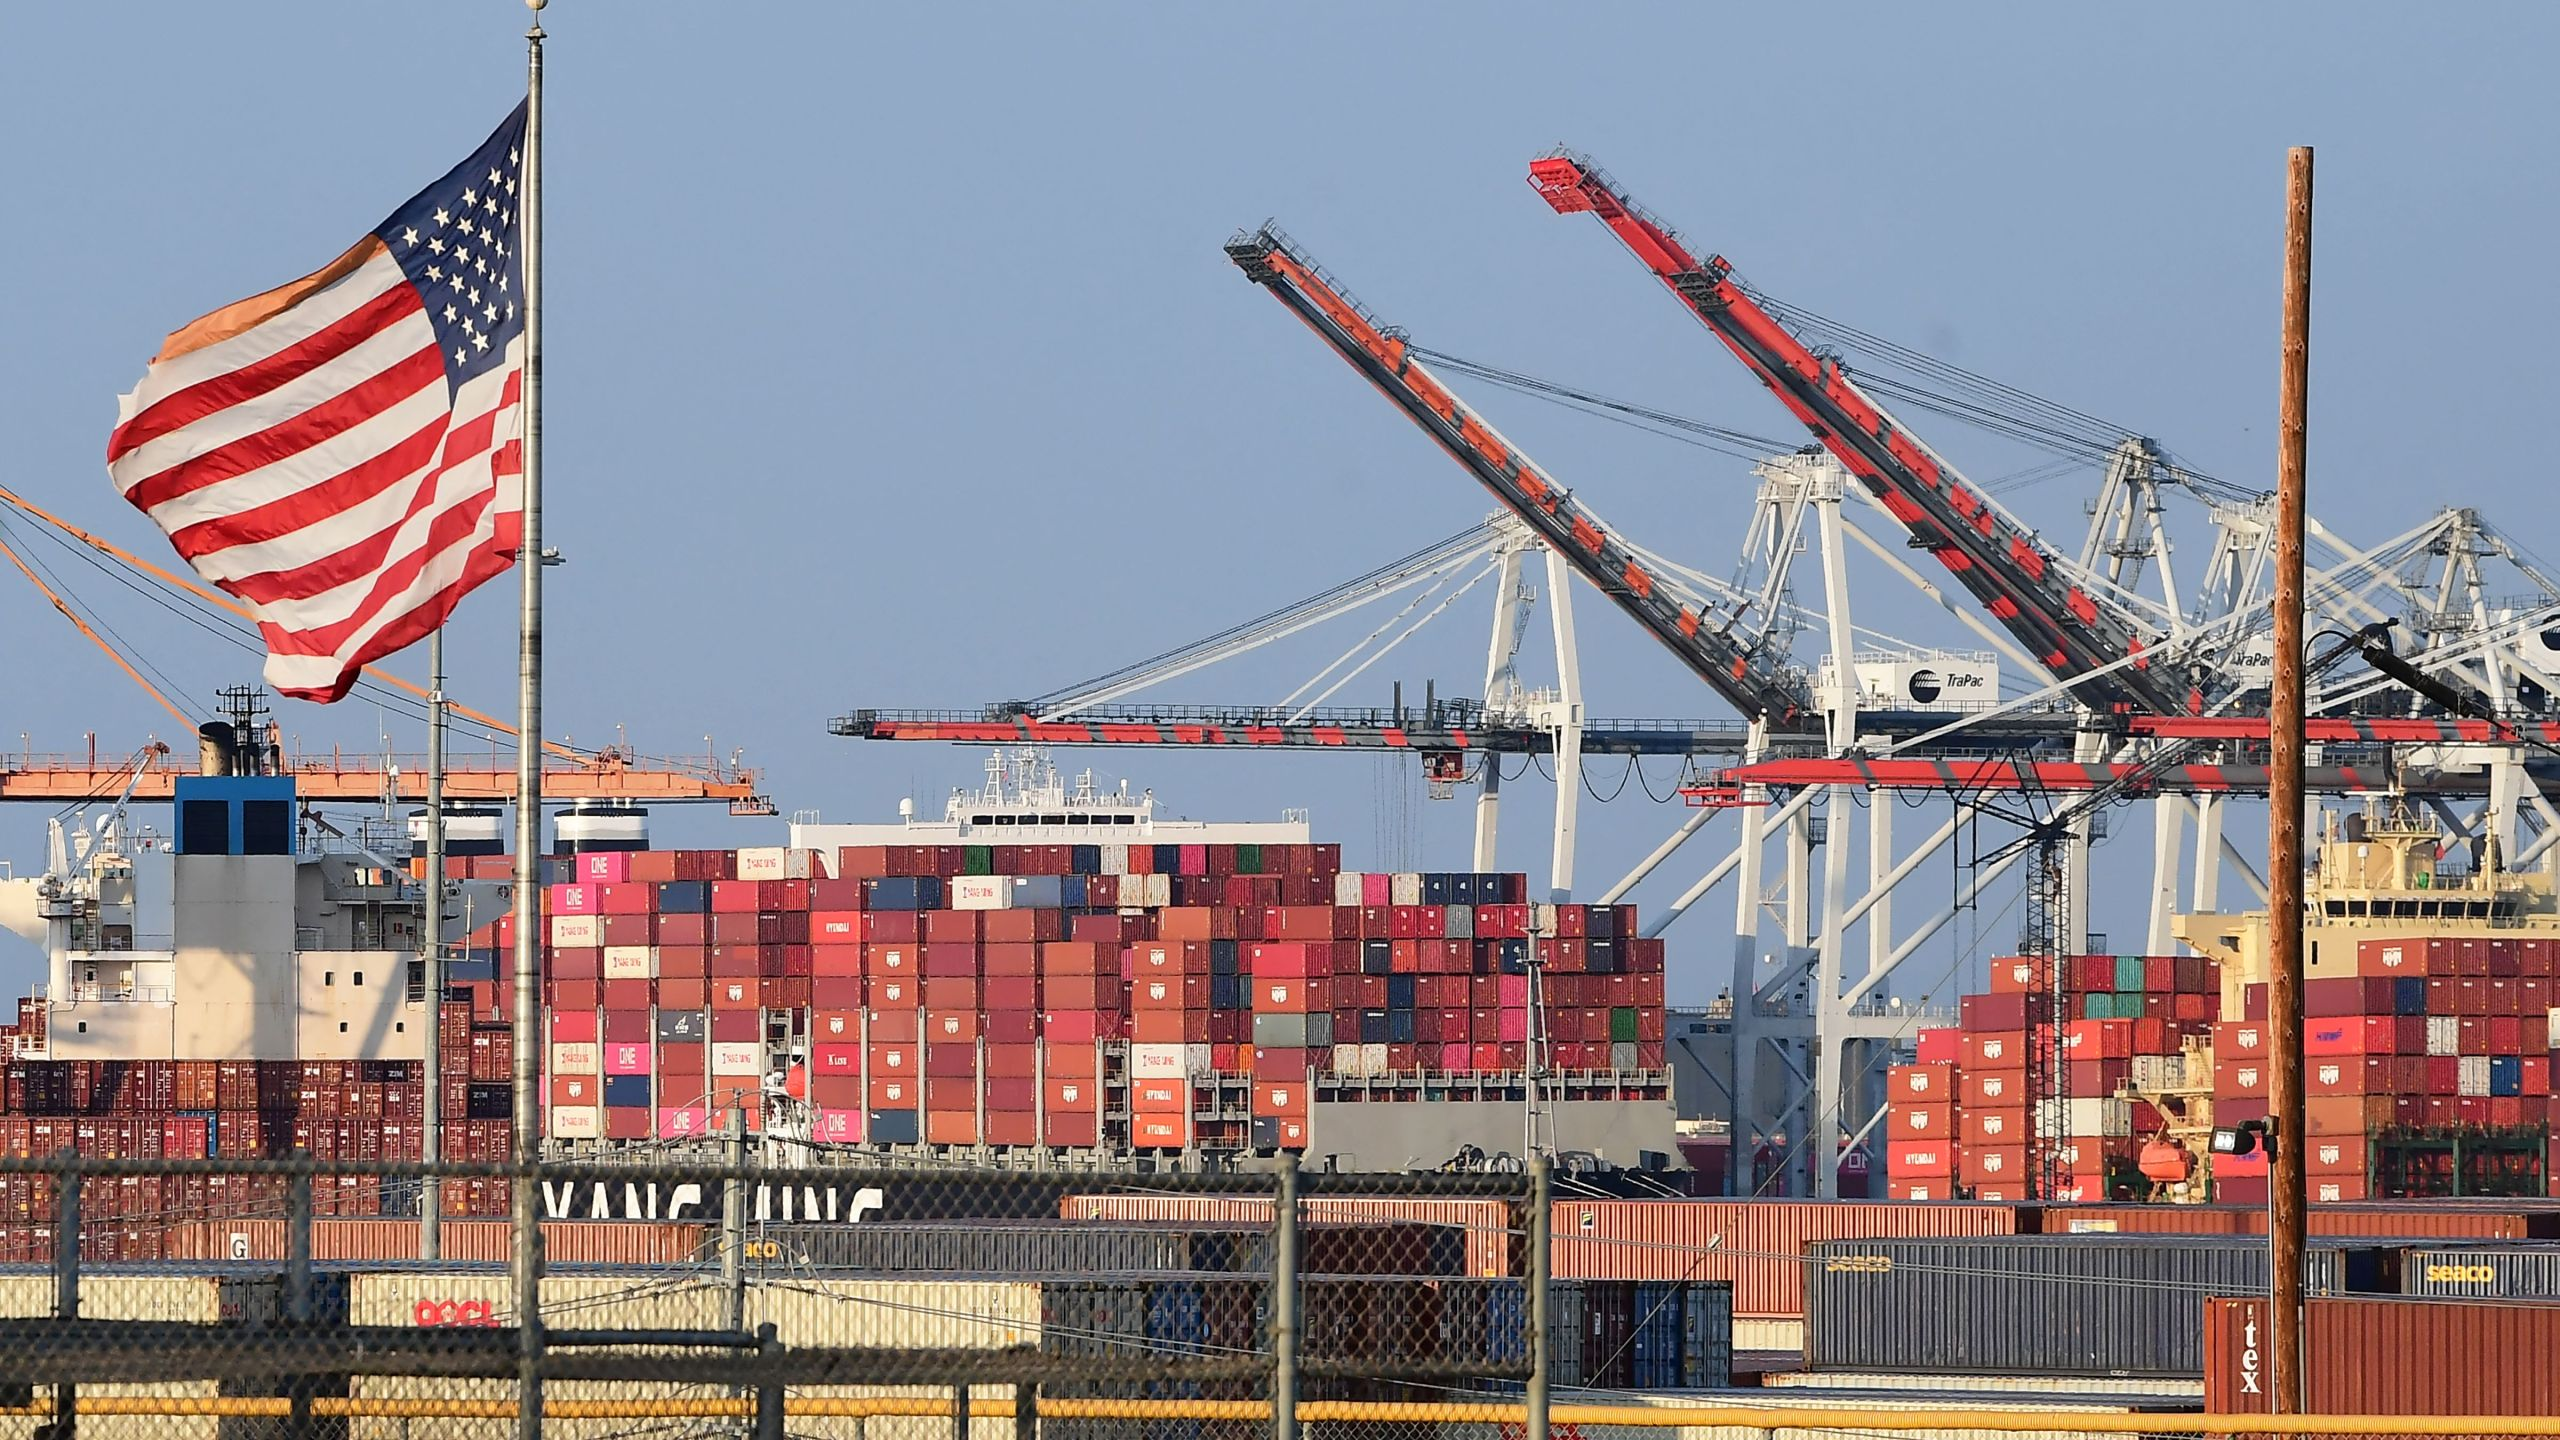 A US flag flies near containers stacked high on a cargo ship at the Port of Los Angeles on September 28, 2021 in Los Angeles, California. - A record number of cargo ships are stuck floating and waiting off the southern California coast amid a supply chain crisis which could mean fewer gifts and toys for Christmas this year as a combination of growing volumes of cargo, Covid-19 related saftey measures and a labor shortage slow the handling and processing of cargo from each ship. (Photo by Frederic J. BROWN / AFP) (Photo by FREDERIC J. BROWN/AFP via Getty Images)